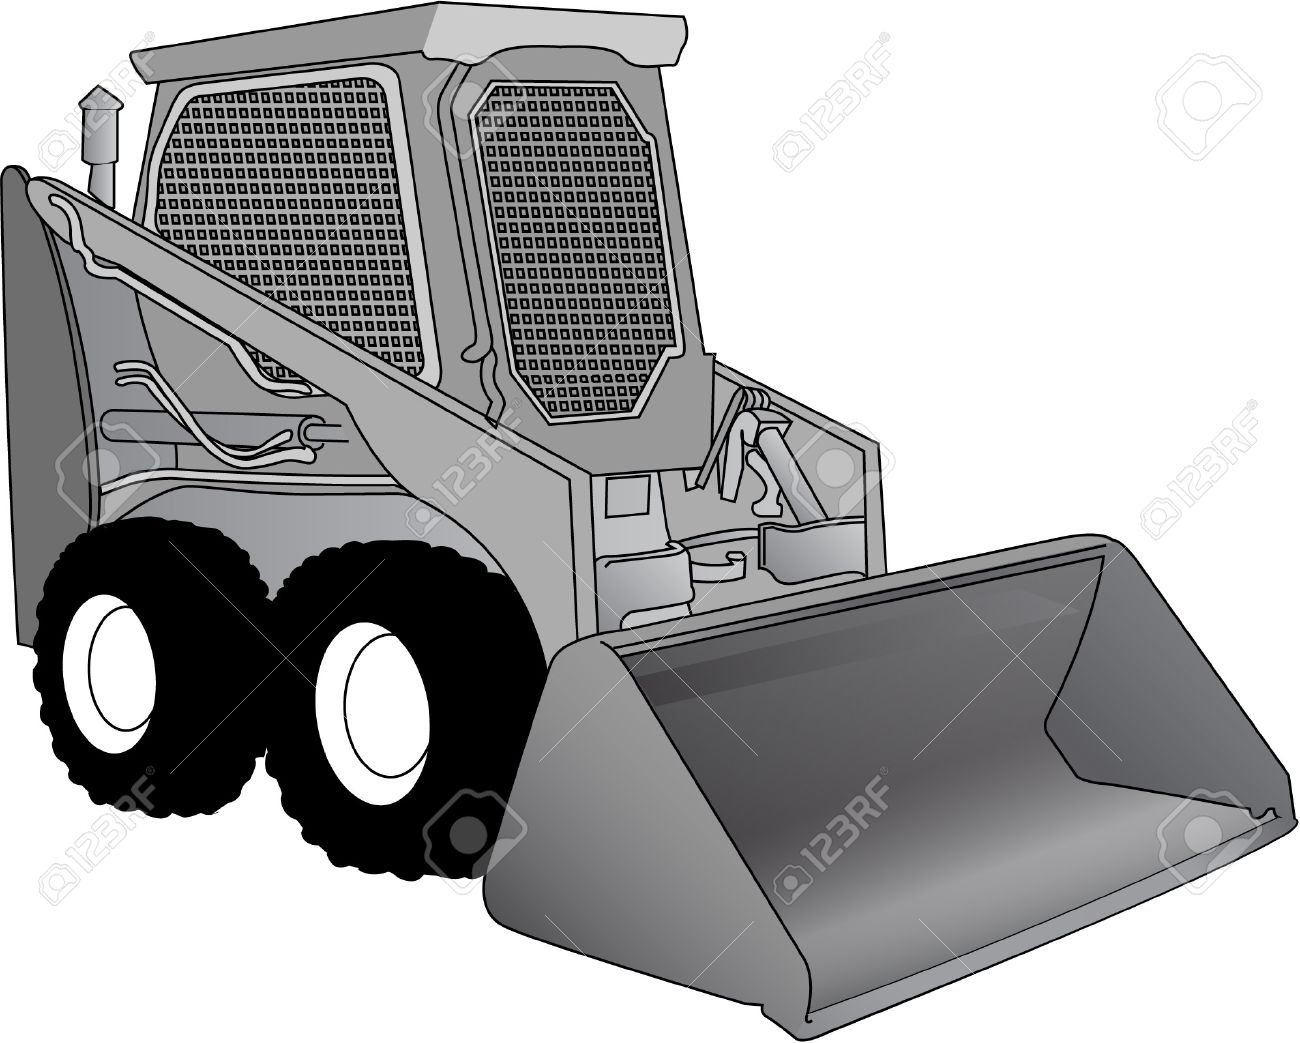 Bobcat clipart machine. Machinery pencil and in